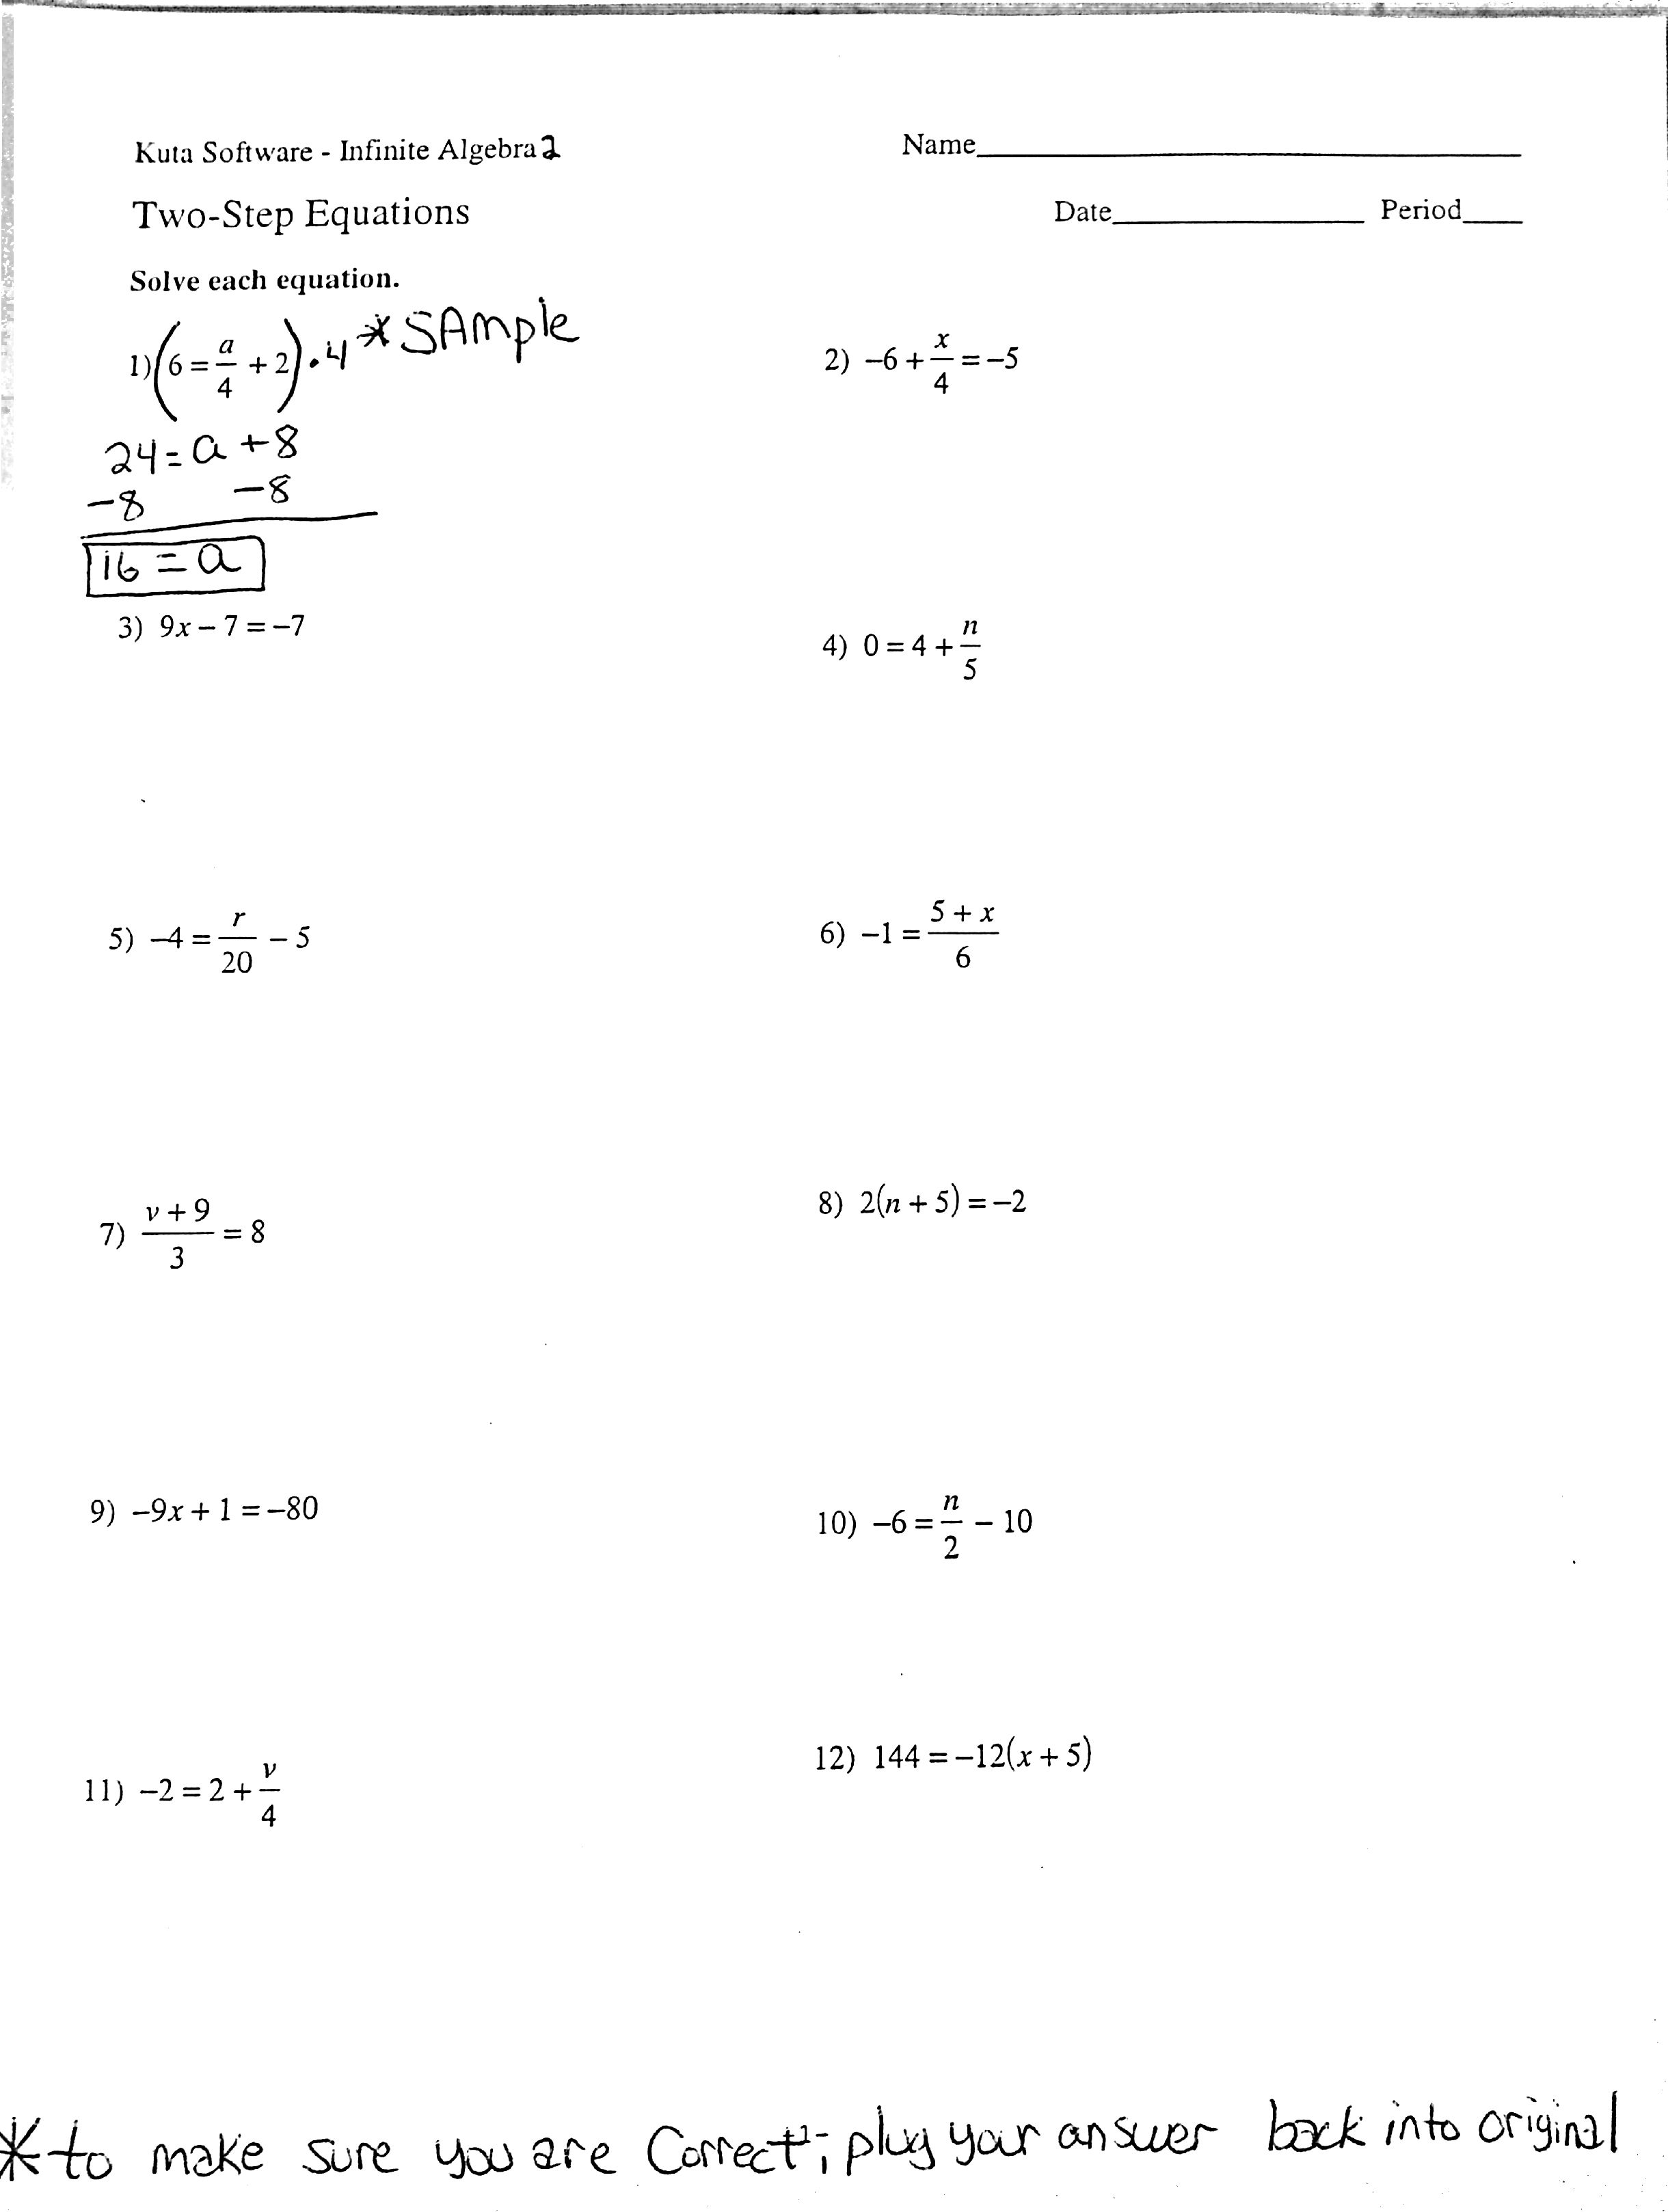 Printables Solving Equations With Fractions Worksheet solving equations with fractions worksheet abitlikethis friday quiz over 1 3 lesson kuta worksheet